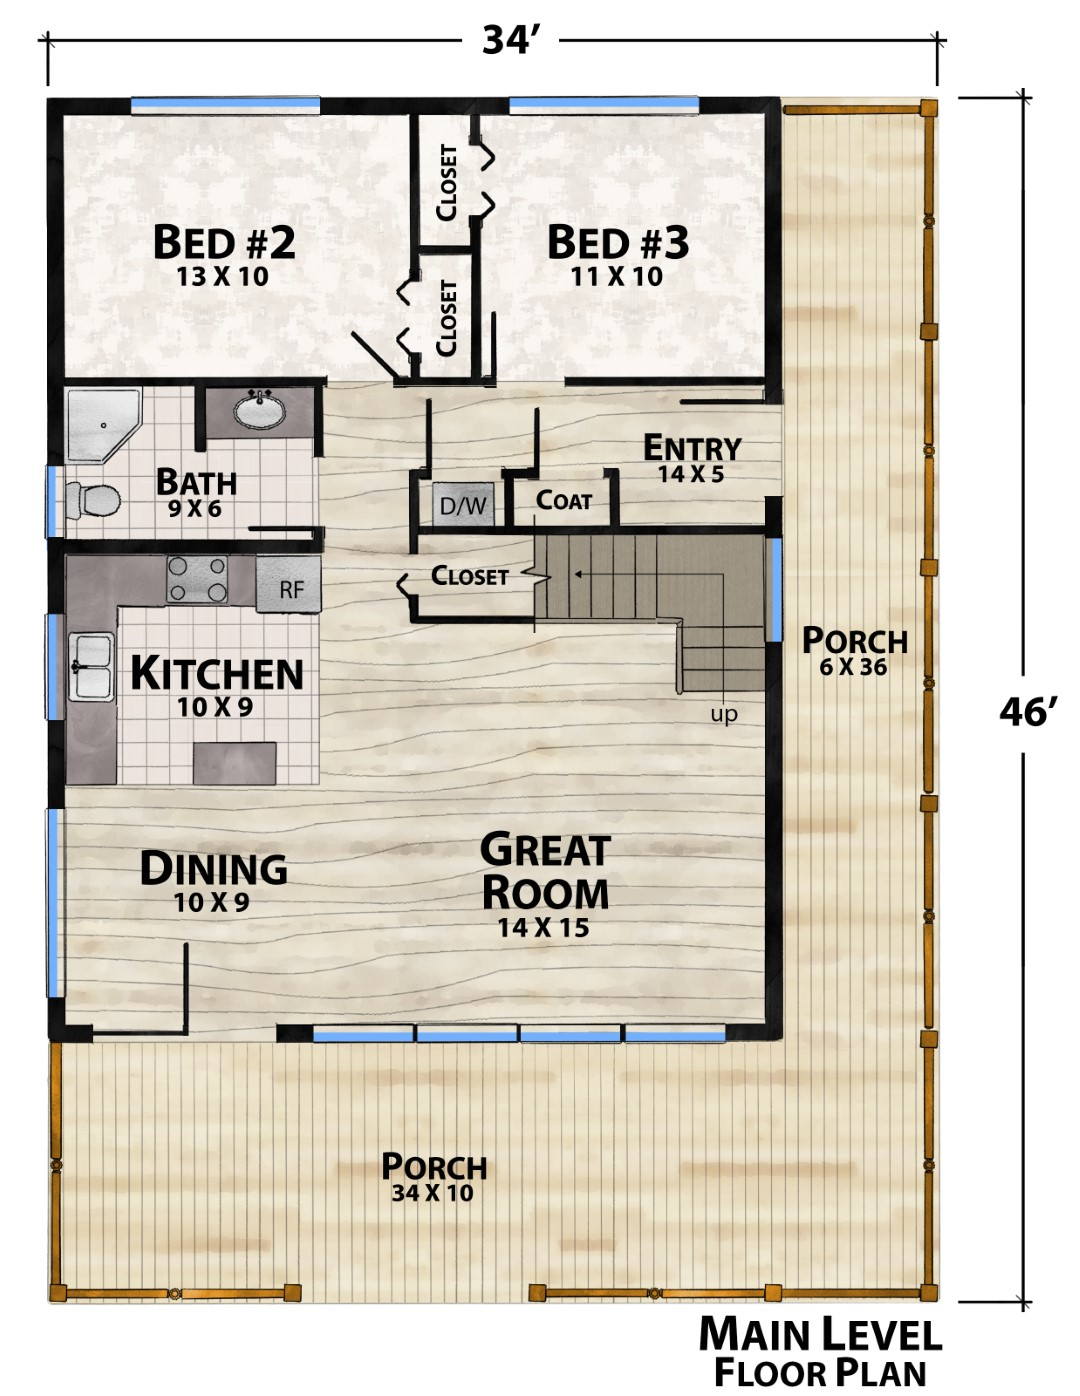 Idaho Mountain Retreat Main Floor Plan by Natural Element Homes